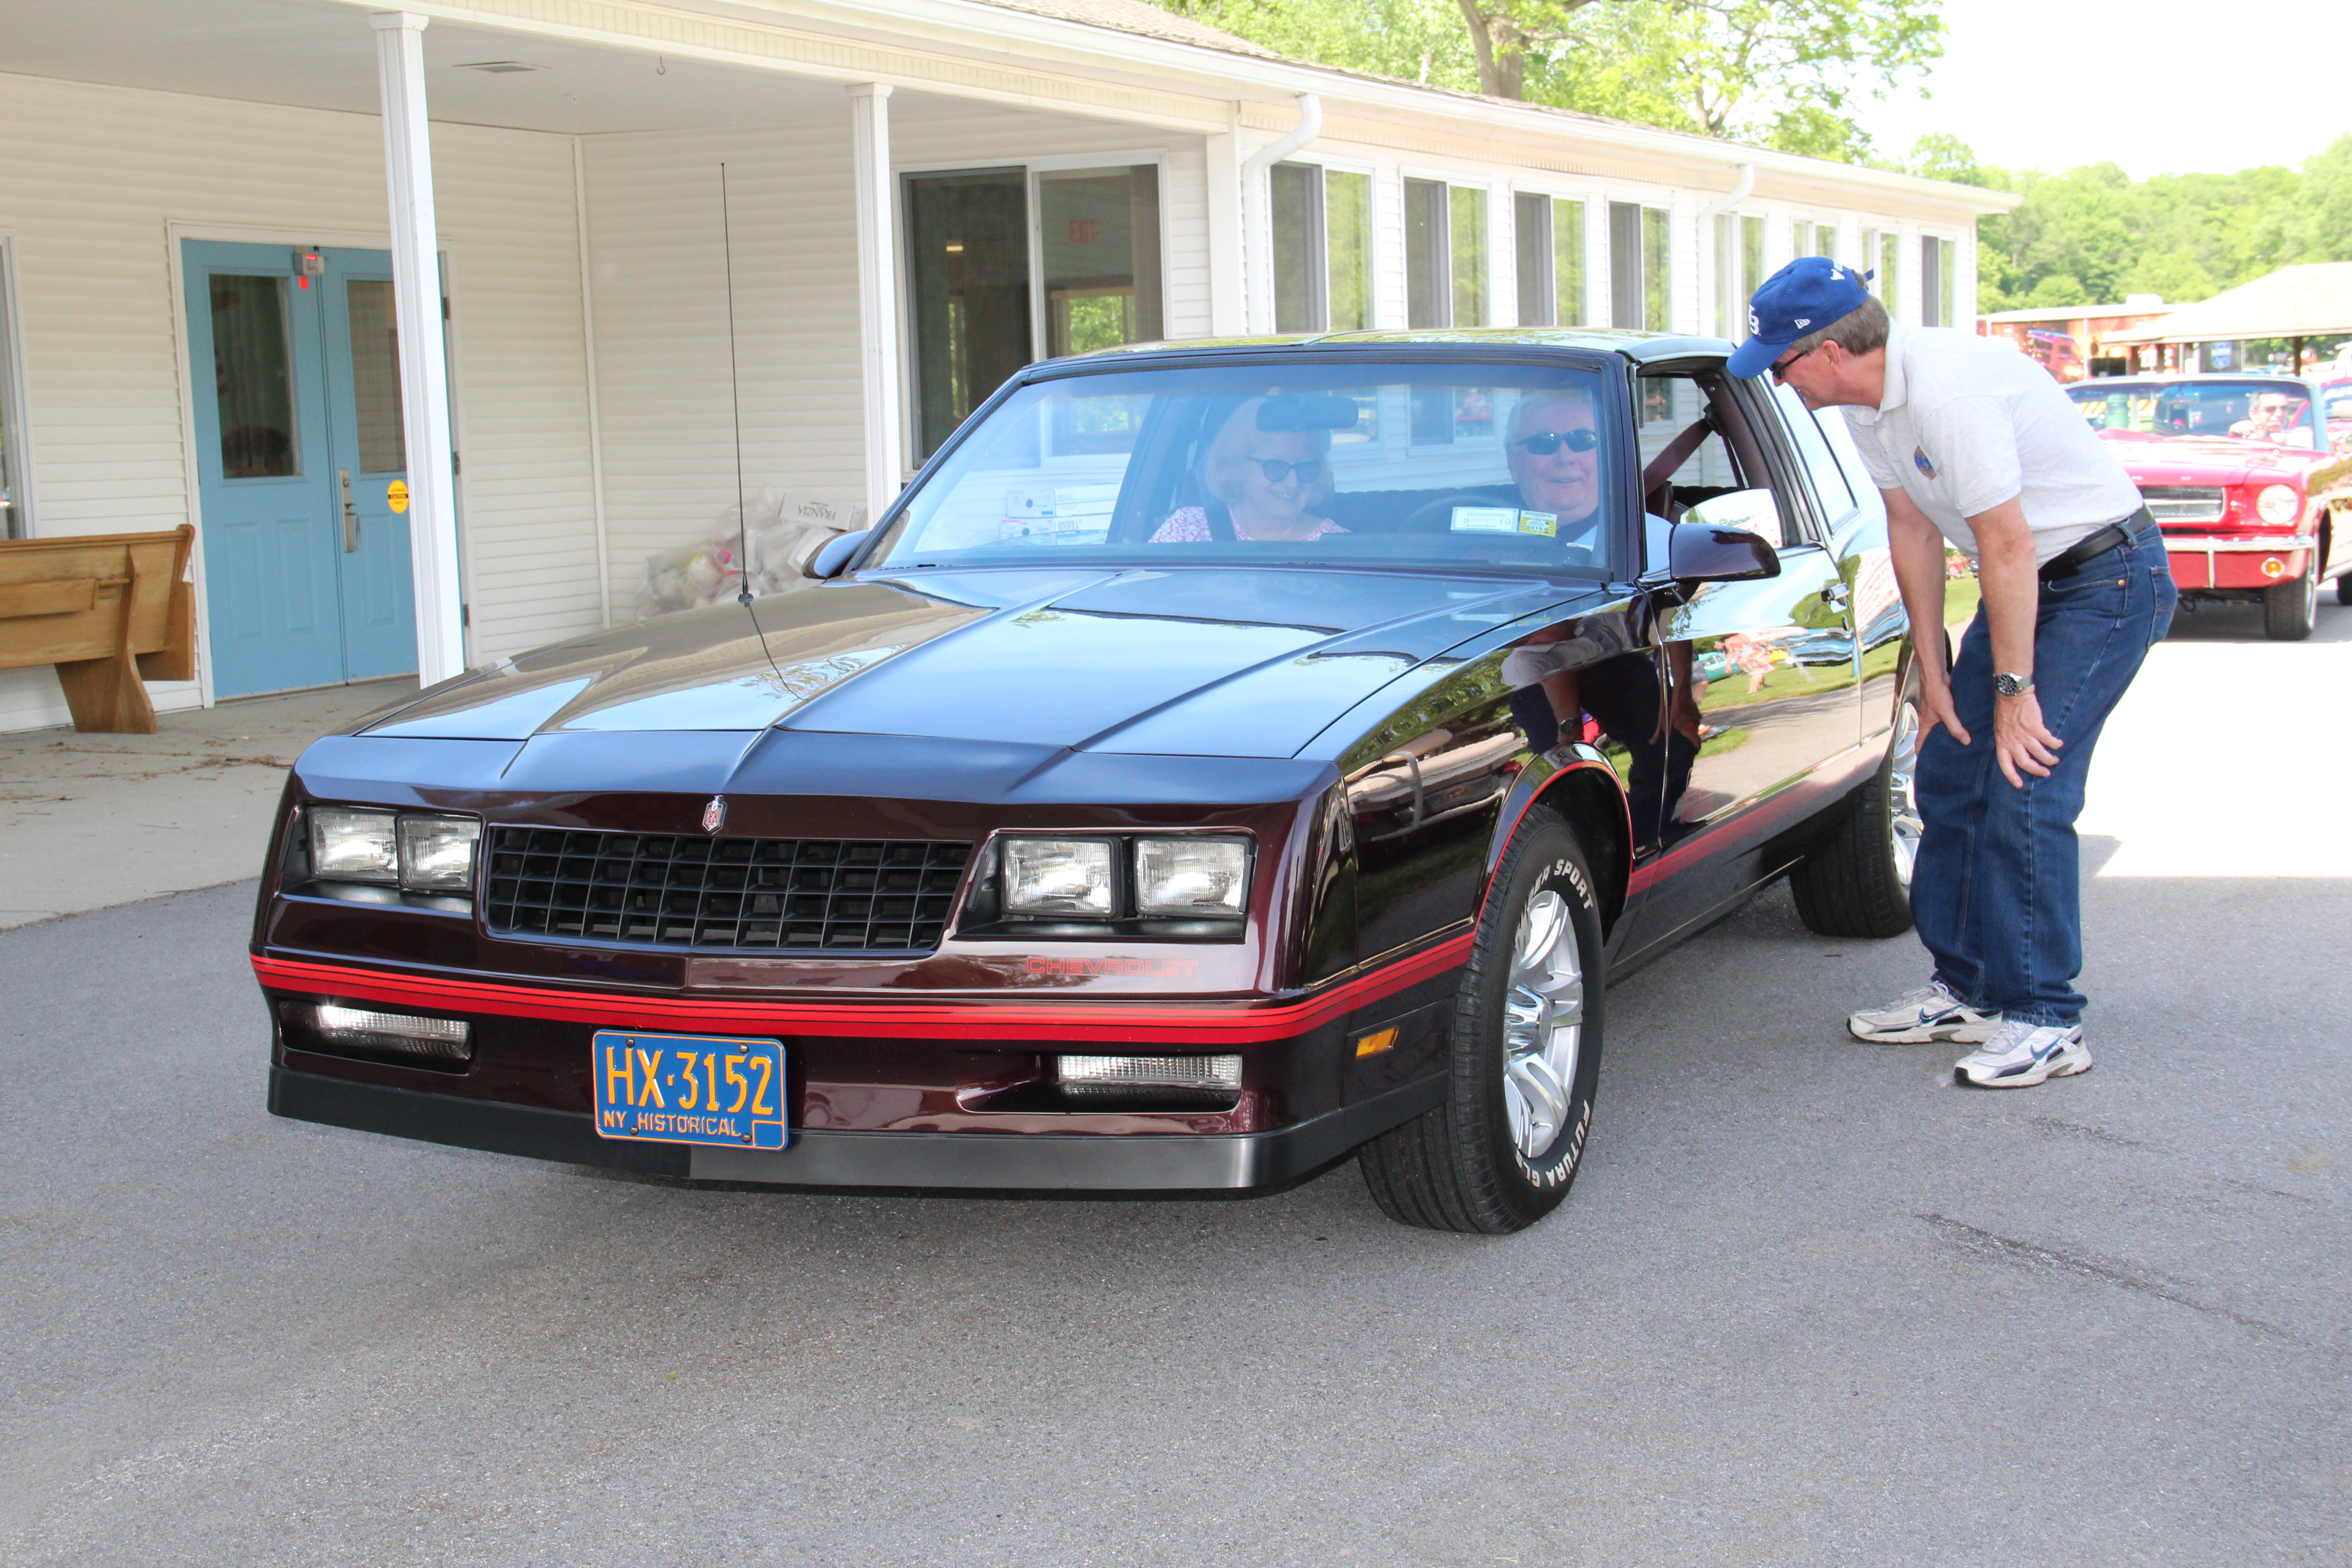 IMG_0758-Class-13-2nd-Pete-Olga-Pucak-1987-Chevrolet-Monte-Carlo-SS